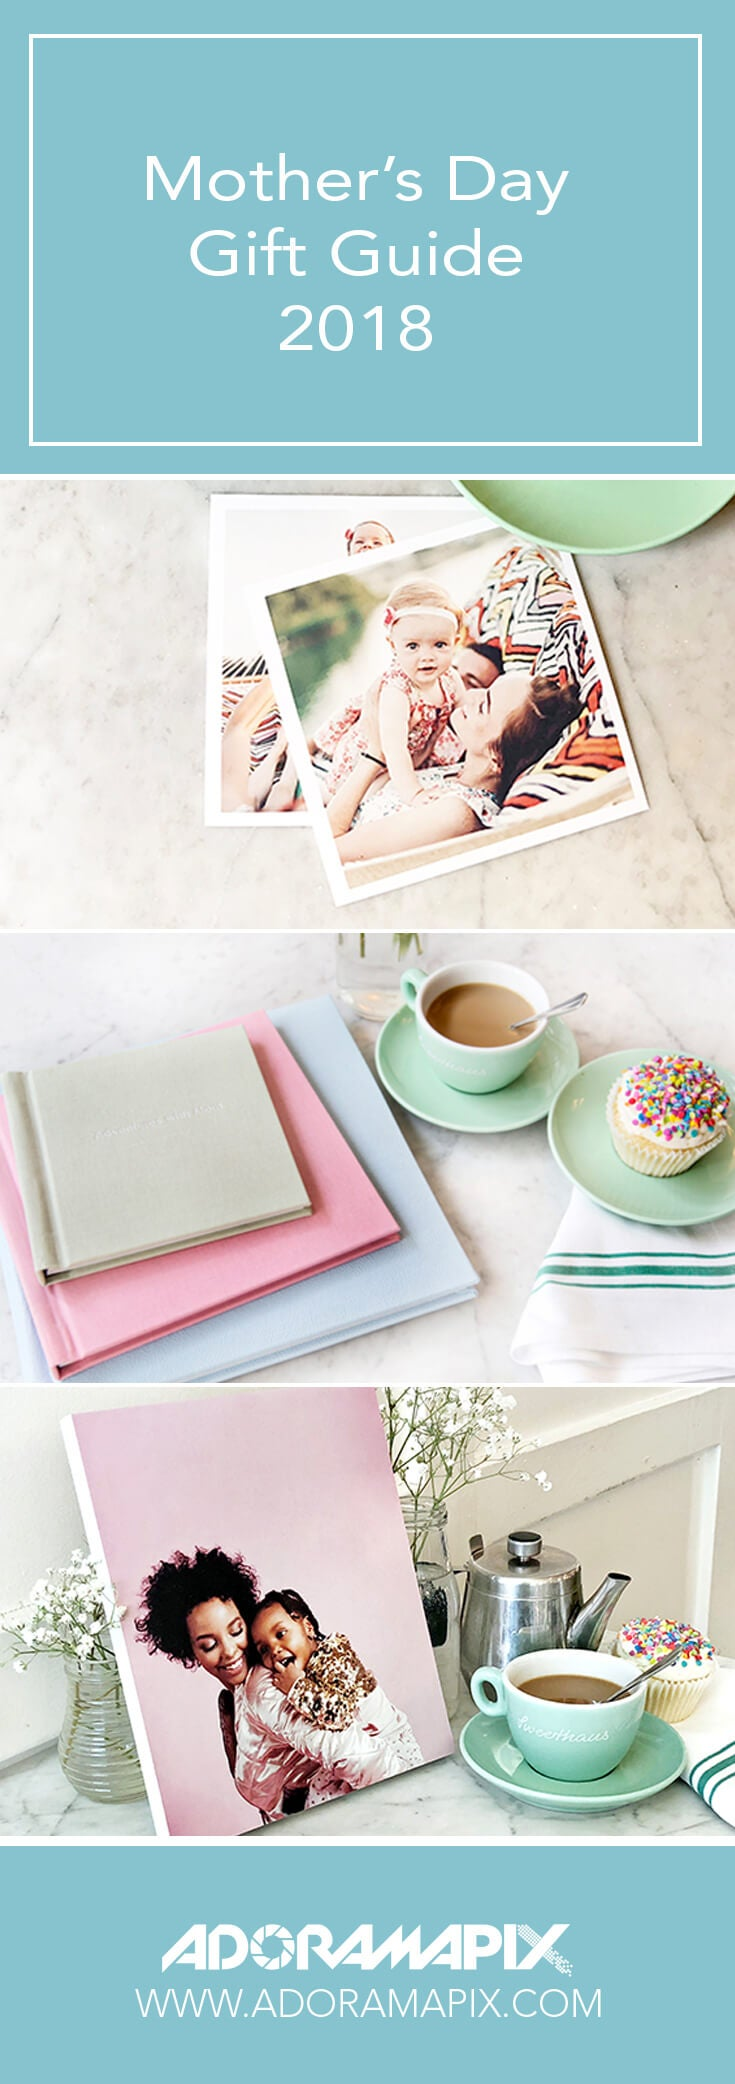 photo books stand outs and photo prints manufactured by AdoramaPix